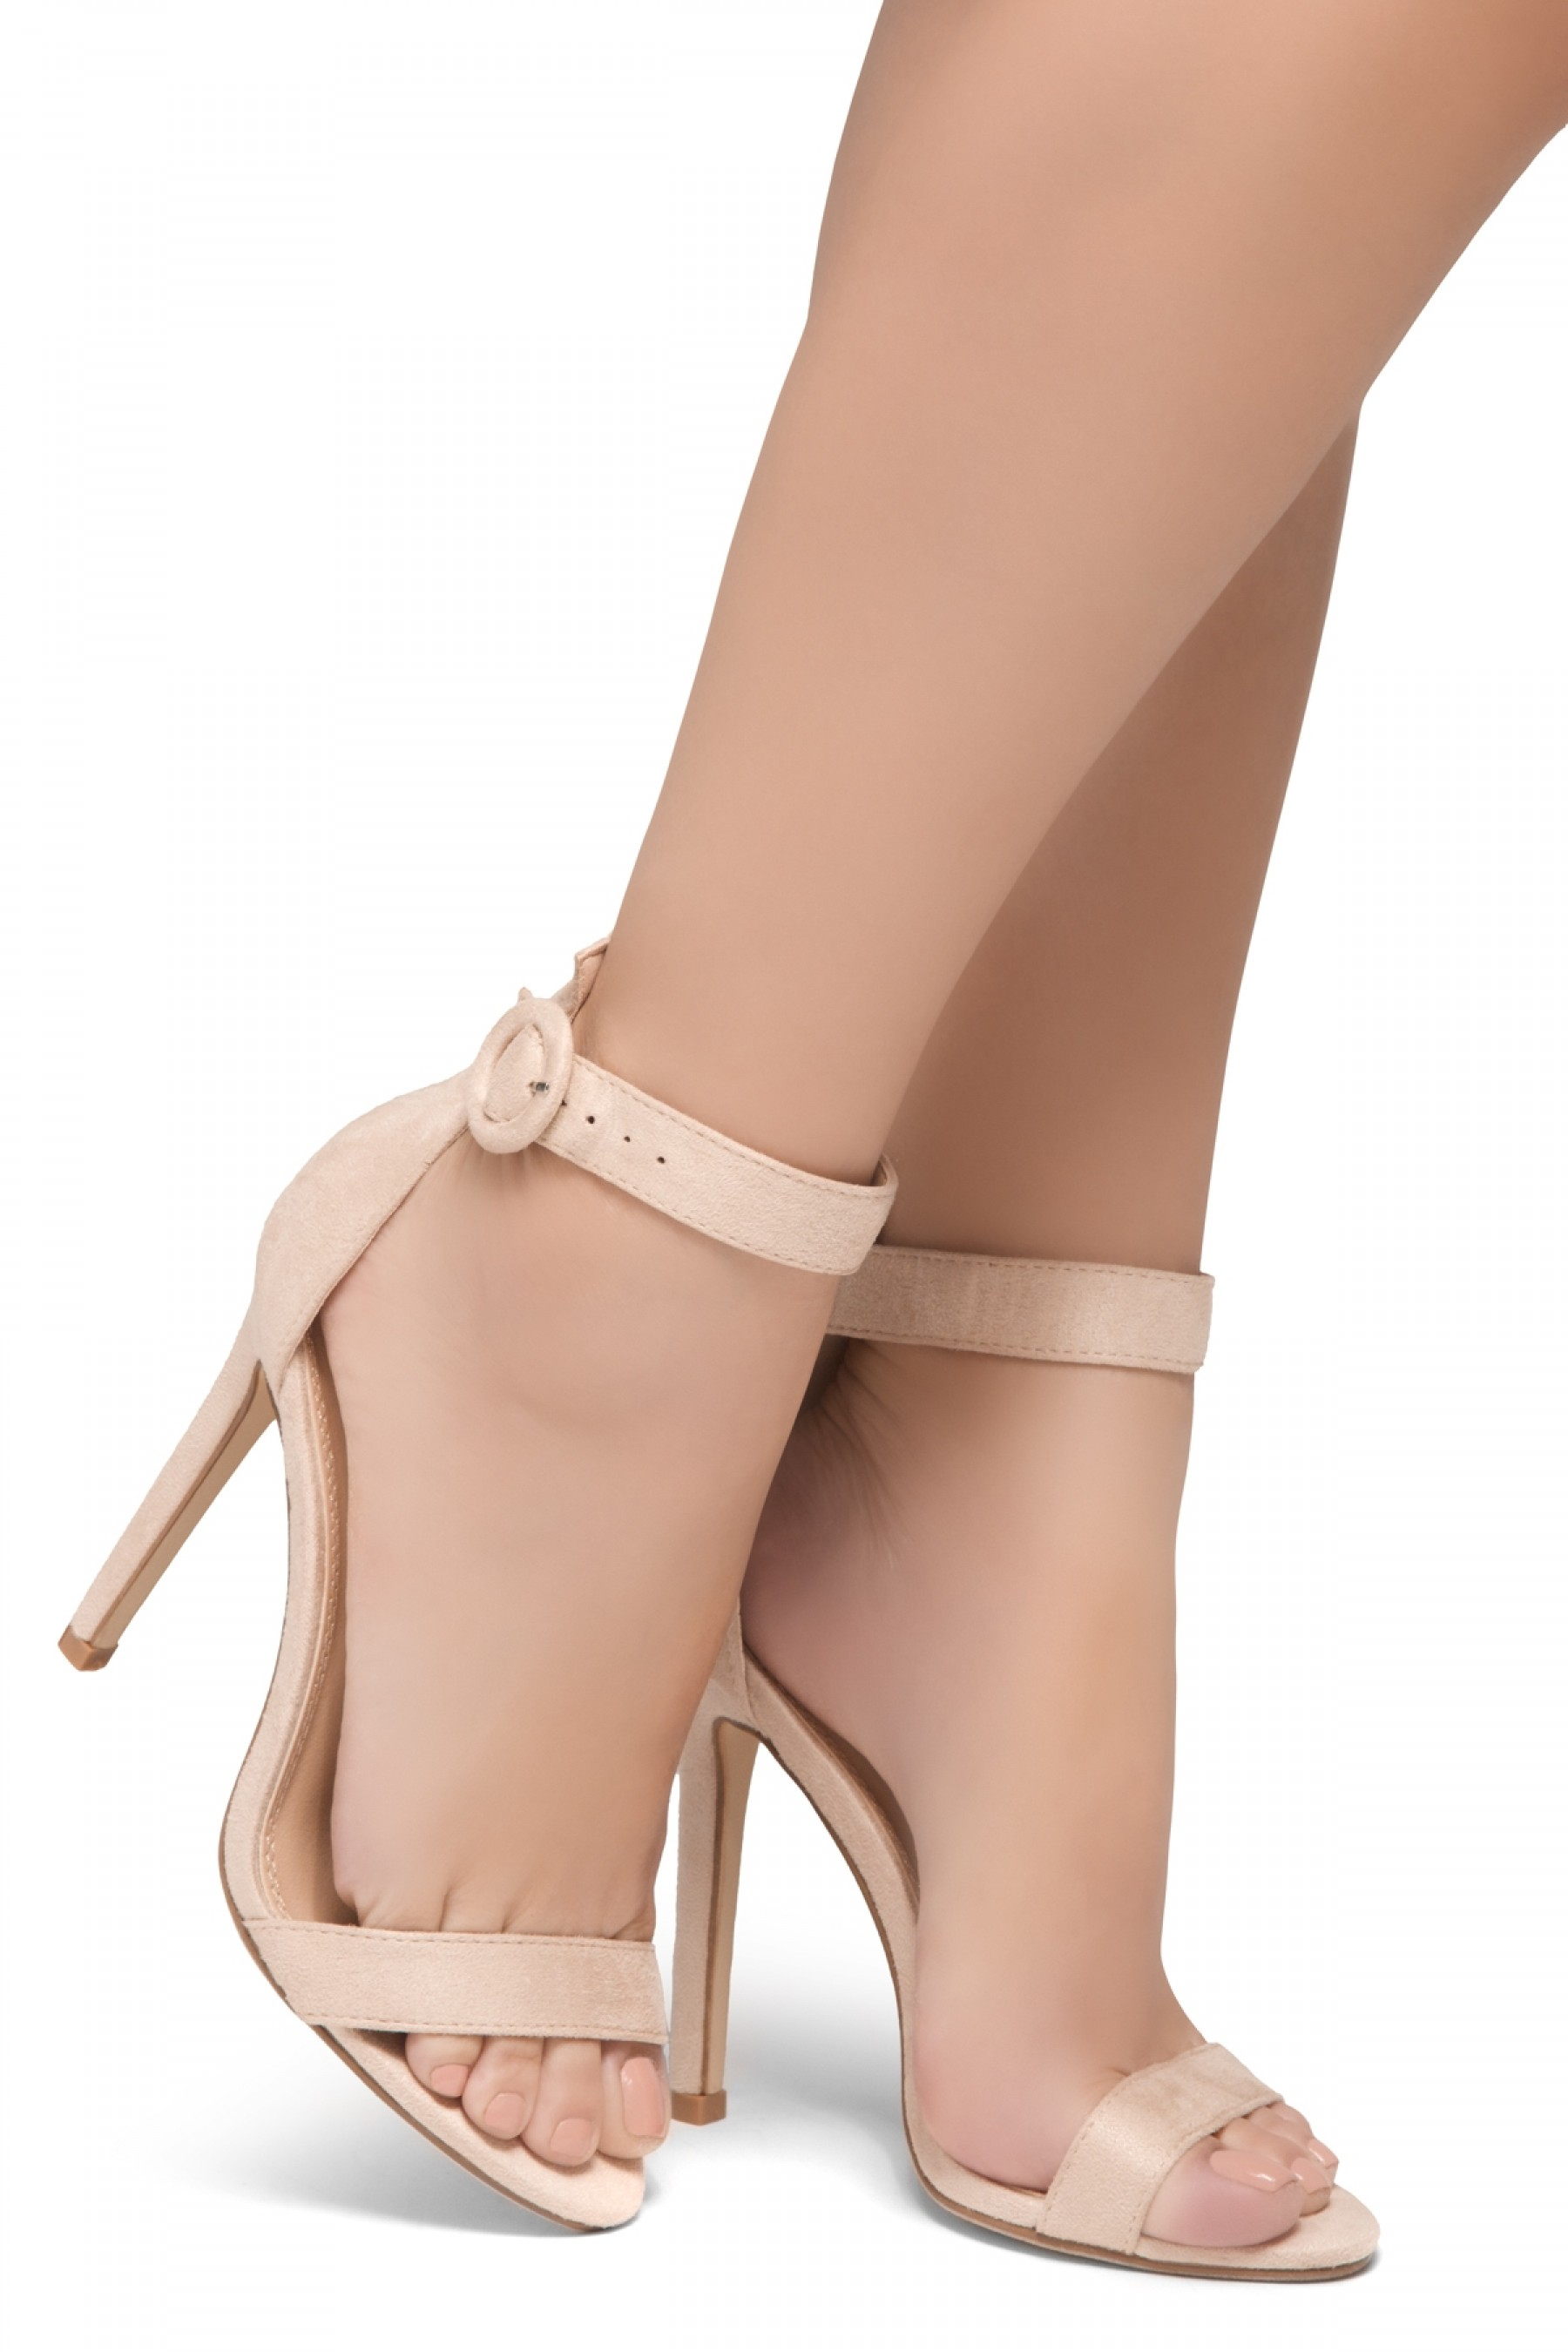 Shoe Land Charming- Ankle Strap Rounded Buckle Open Toe Stiletto Heel (Beige)